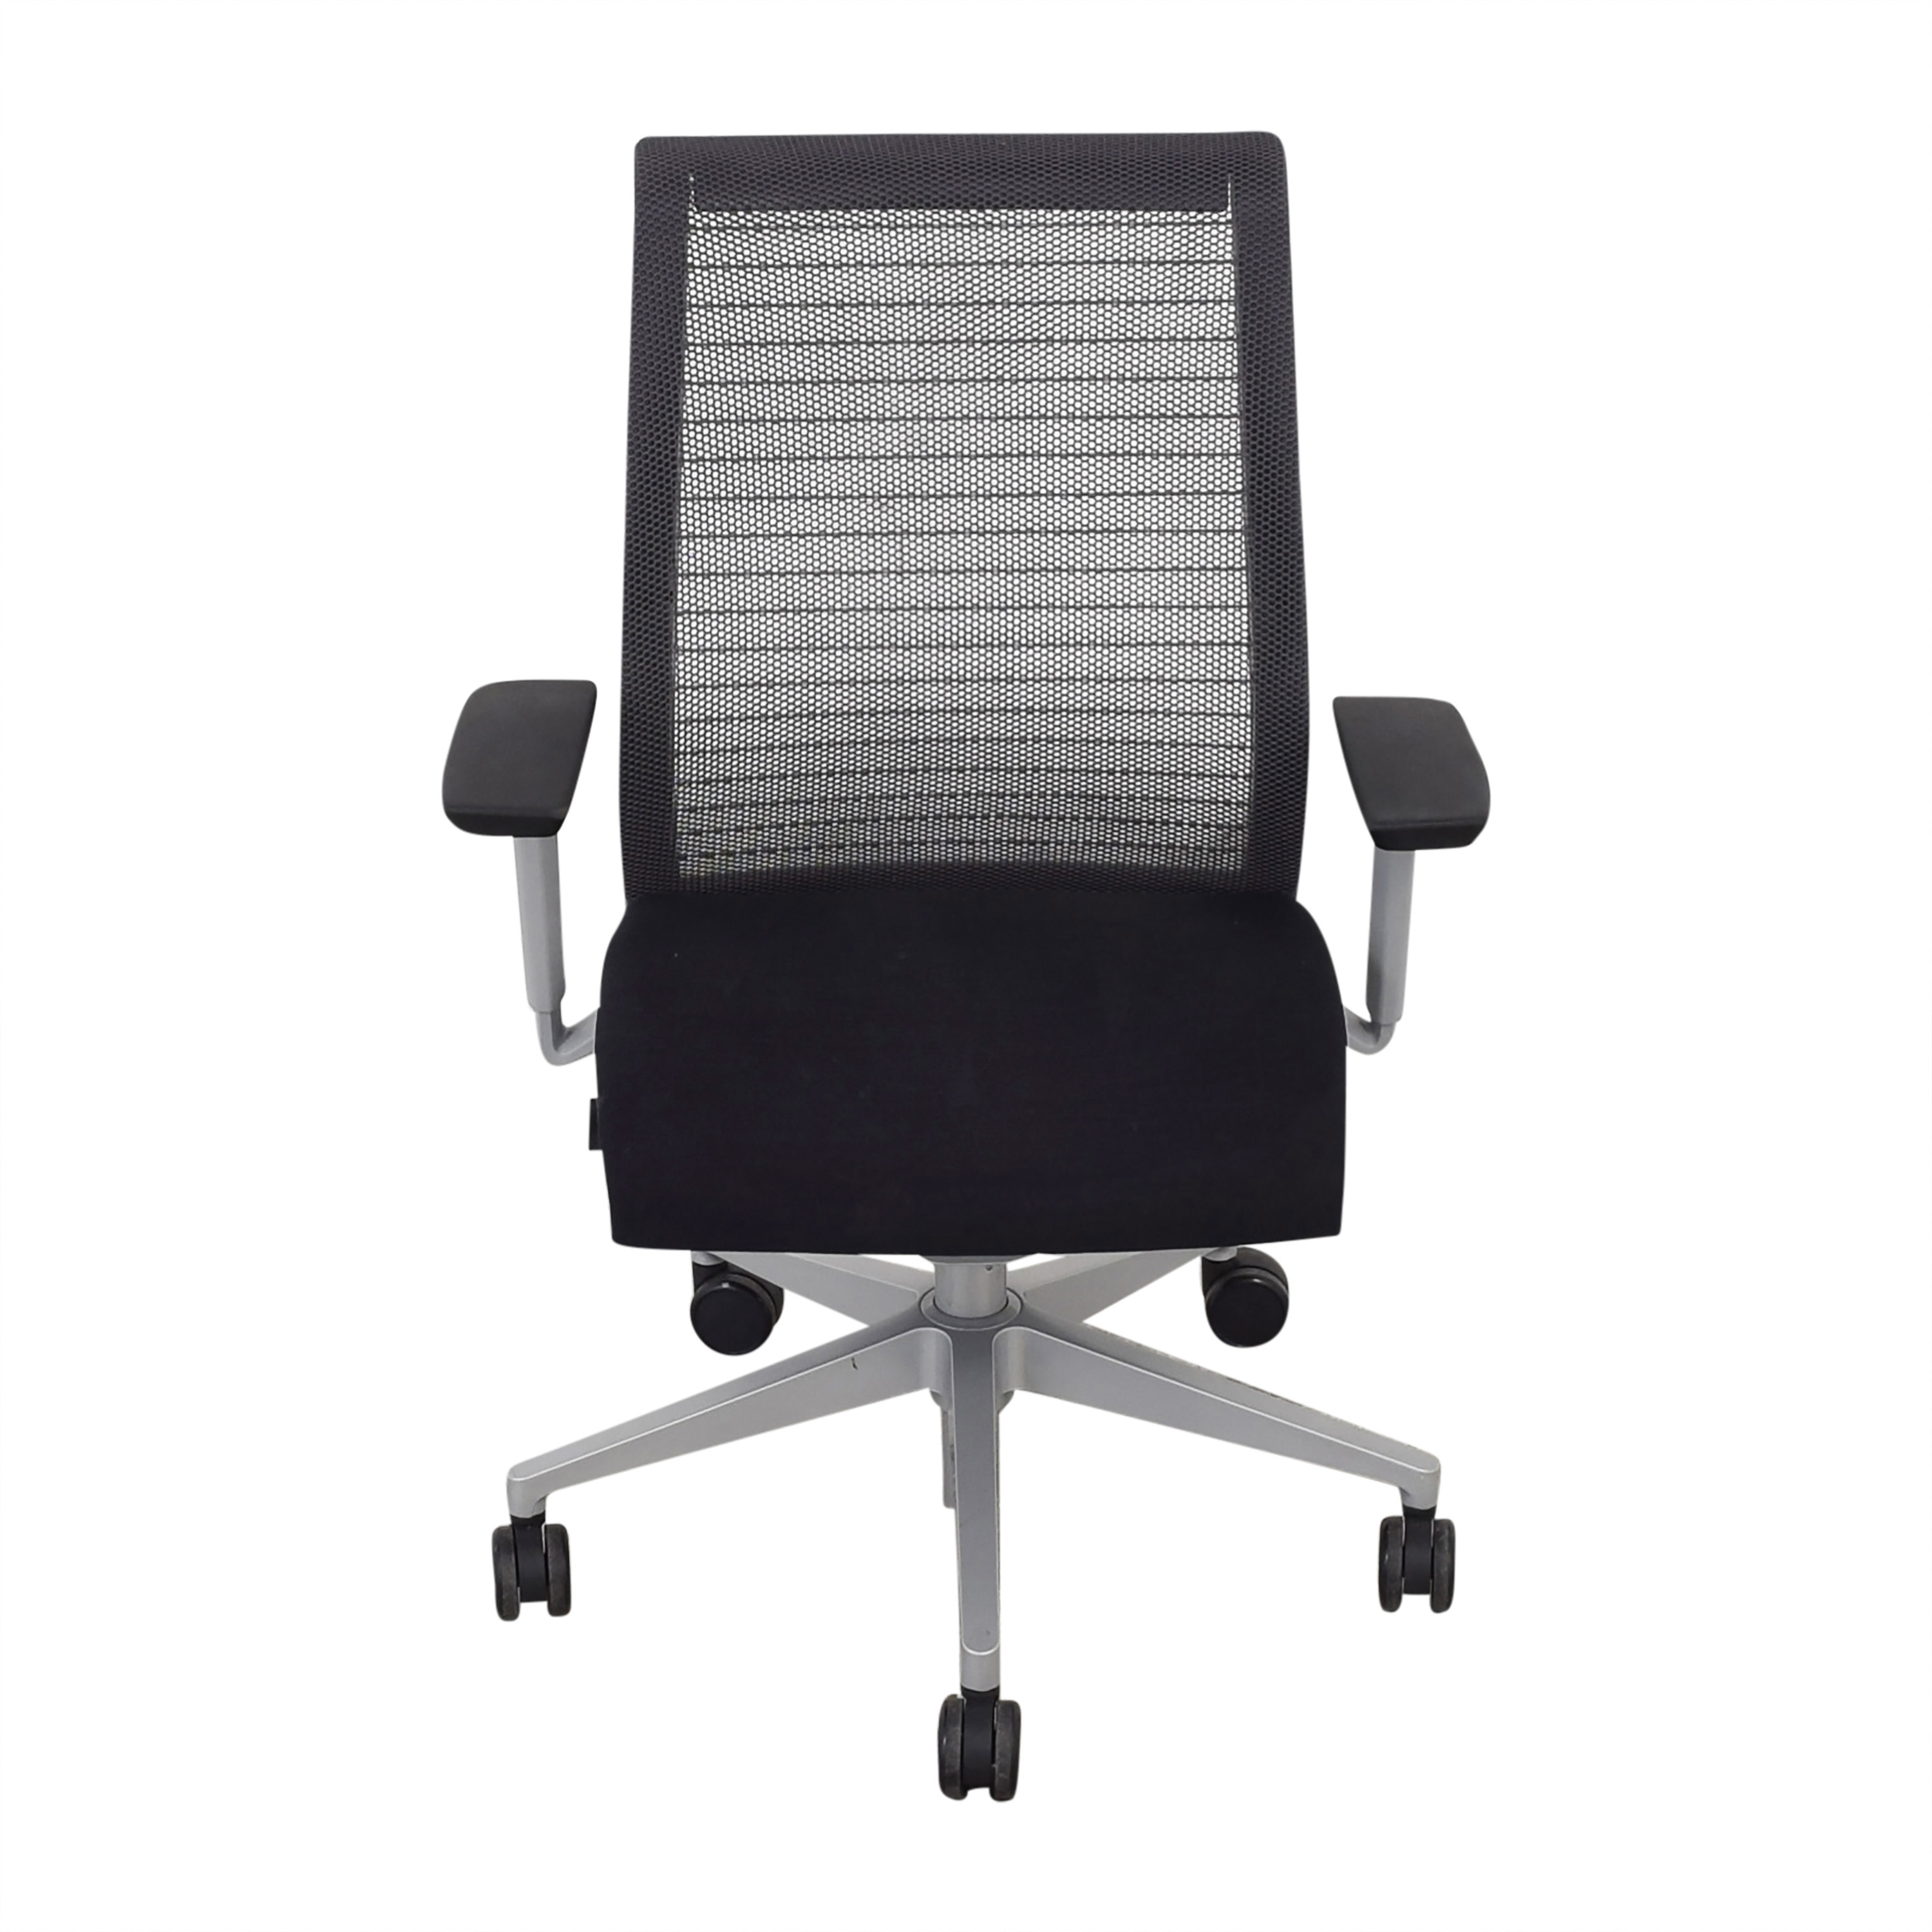 Steelcase Steelcase Cobi Swivel Chair on sale